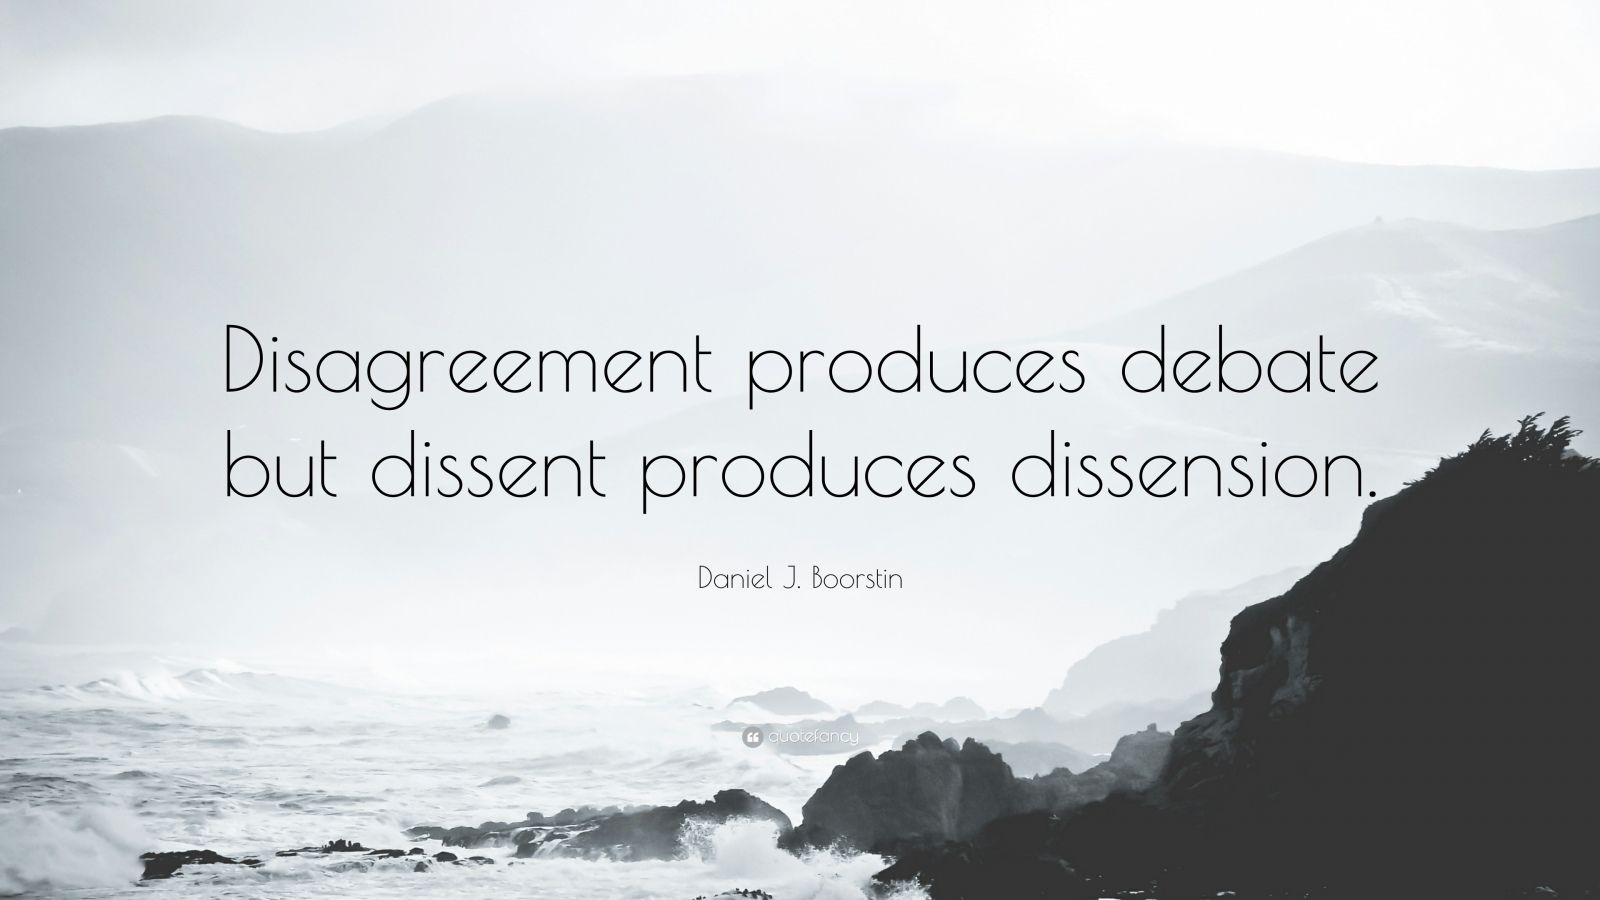 dissent vs disagreement Dissenting definition, to differ in sentiment or opinion, especially from the majority withhold assent disagree (often followed by from): two of the justices dissented from the majority decision.